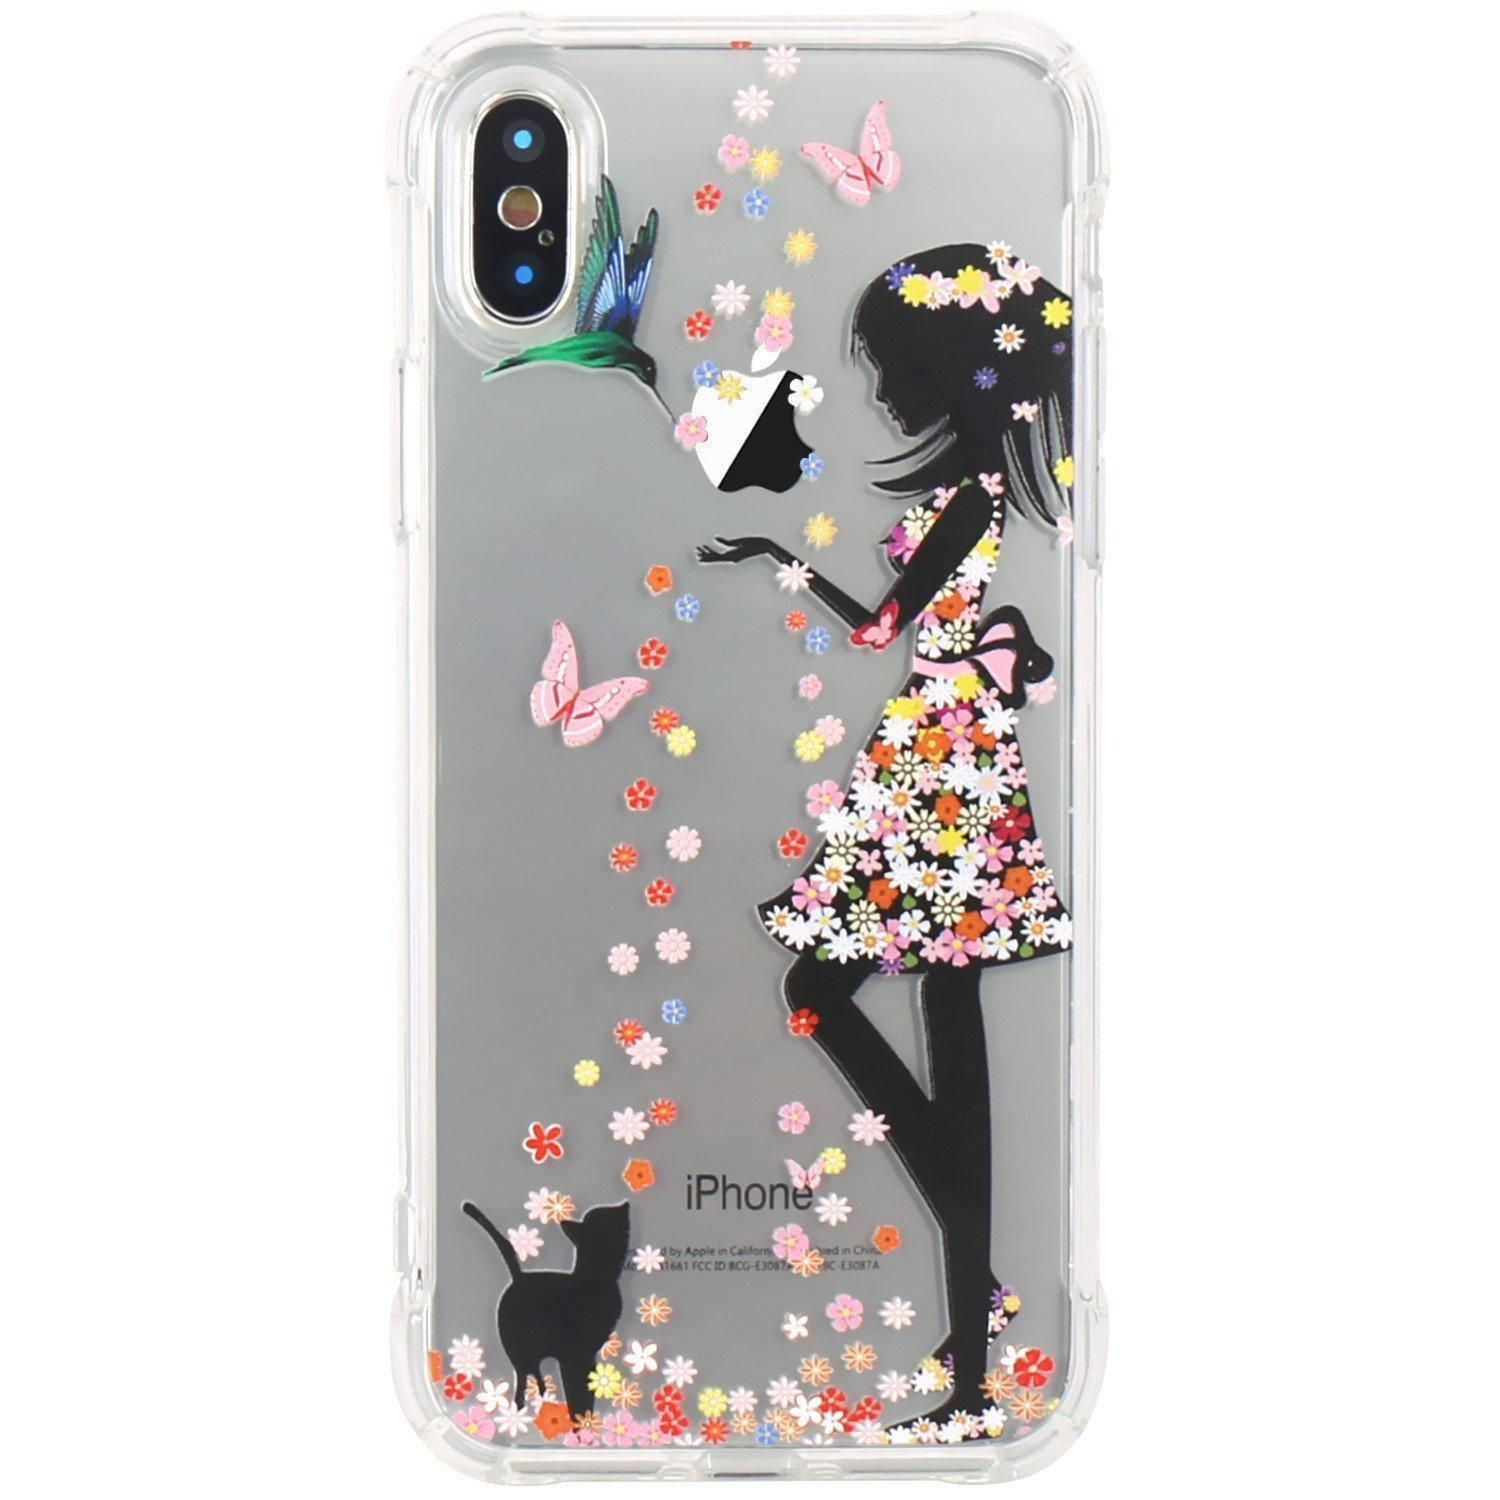 sale retailer 06a9e 4b07f LADY DANCING Cute New Clear Cell Phone Case Cover Accessories For ...